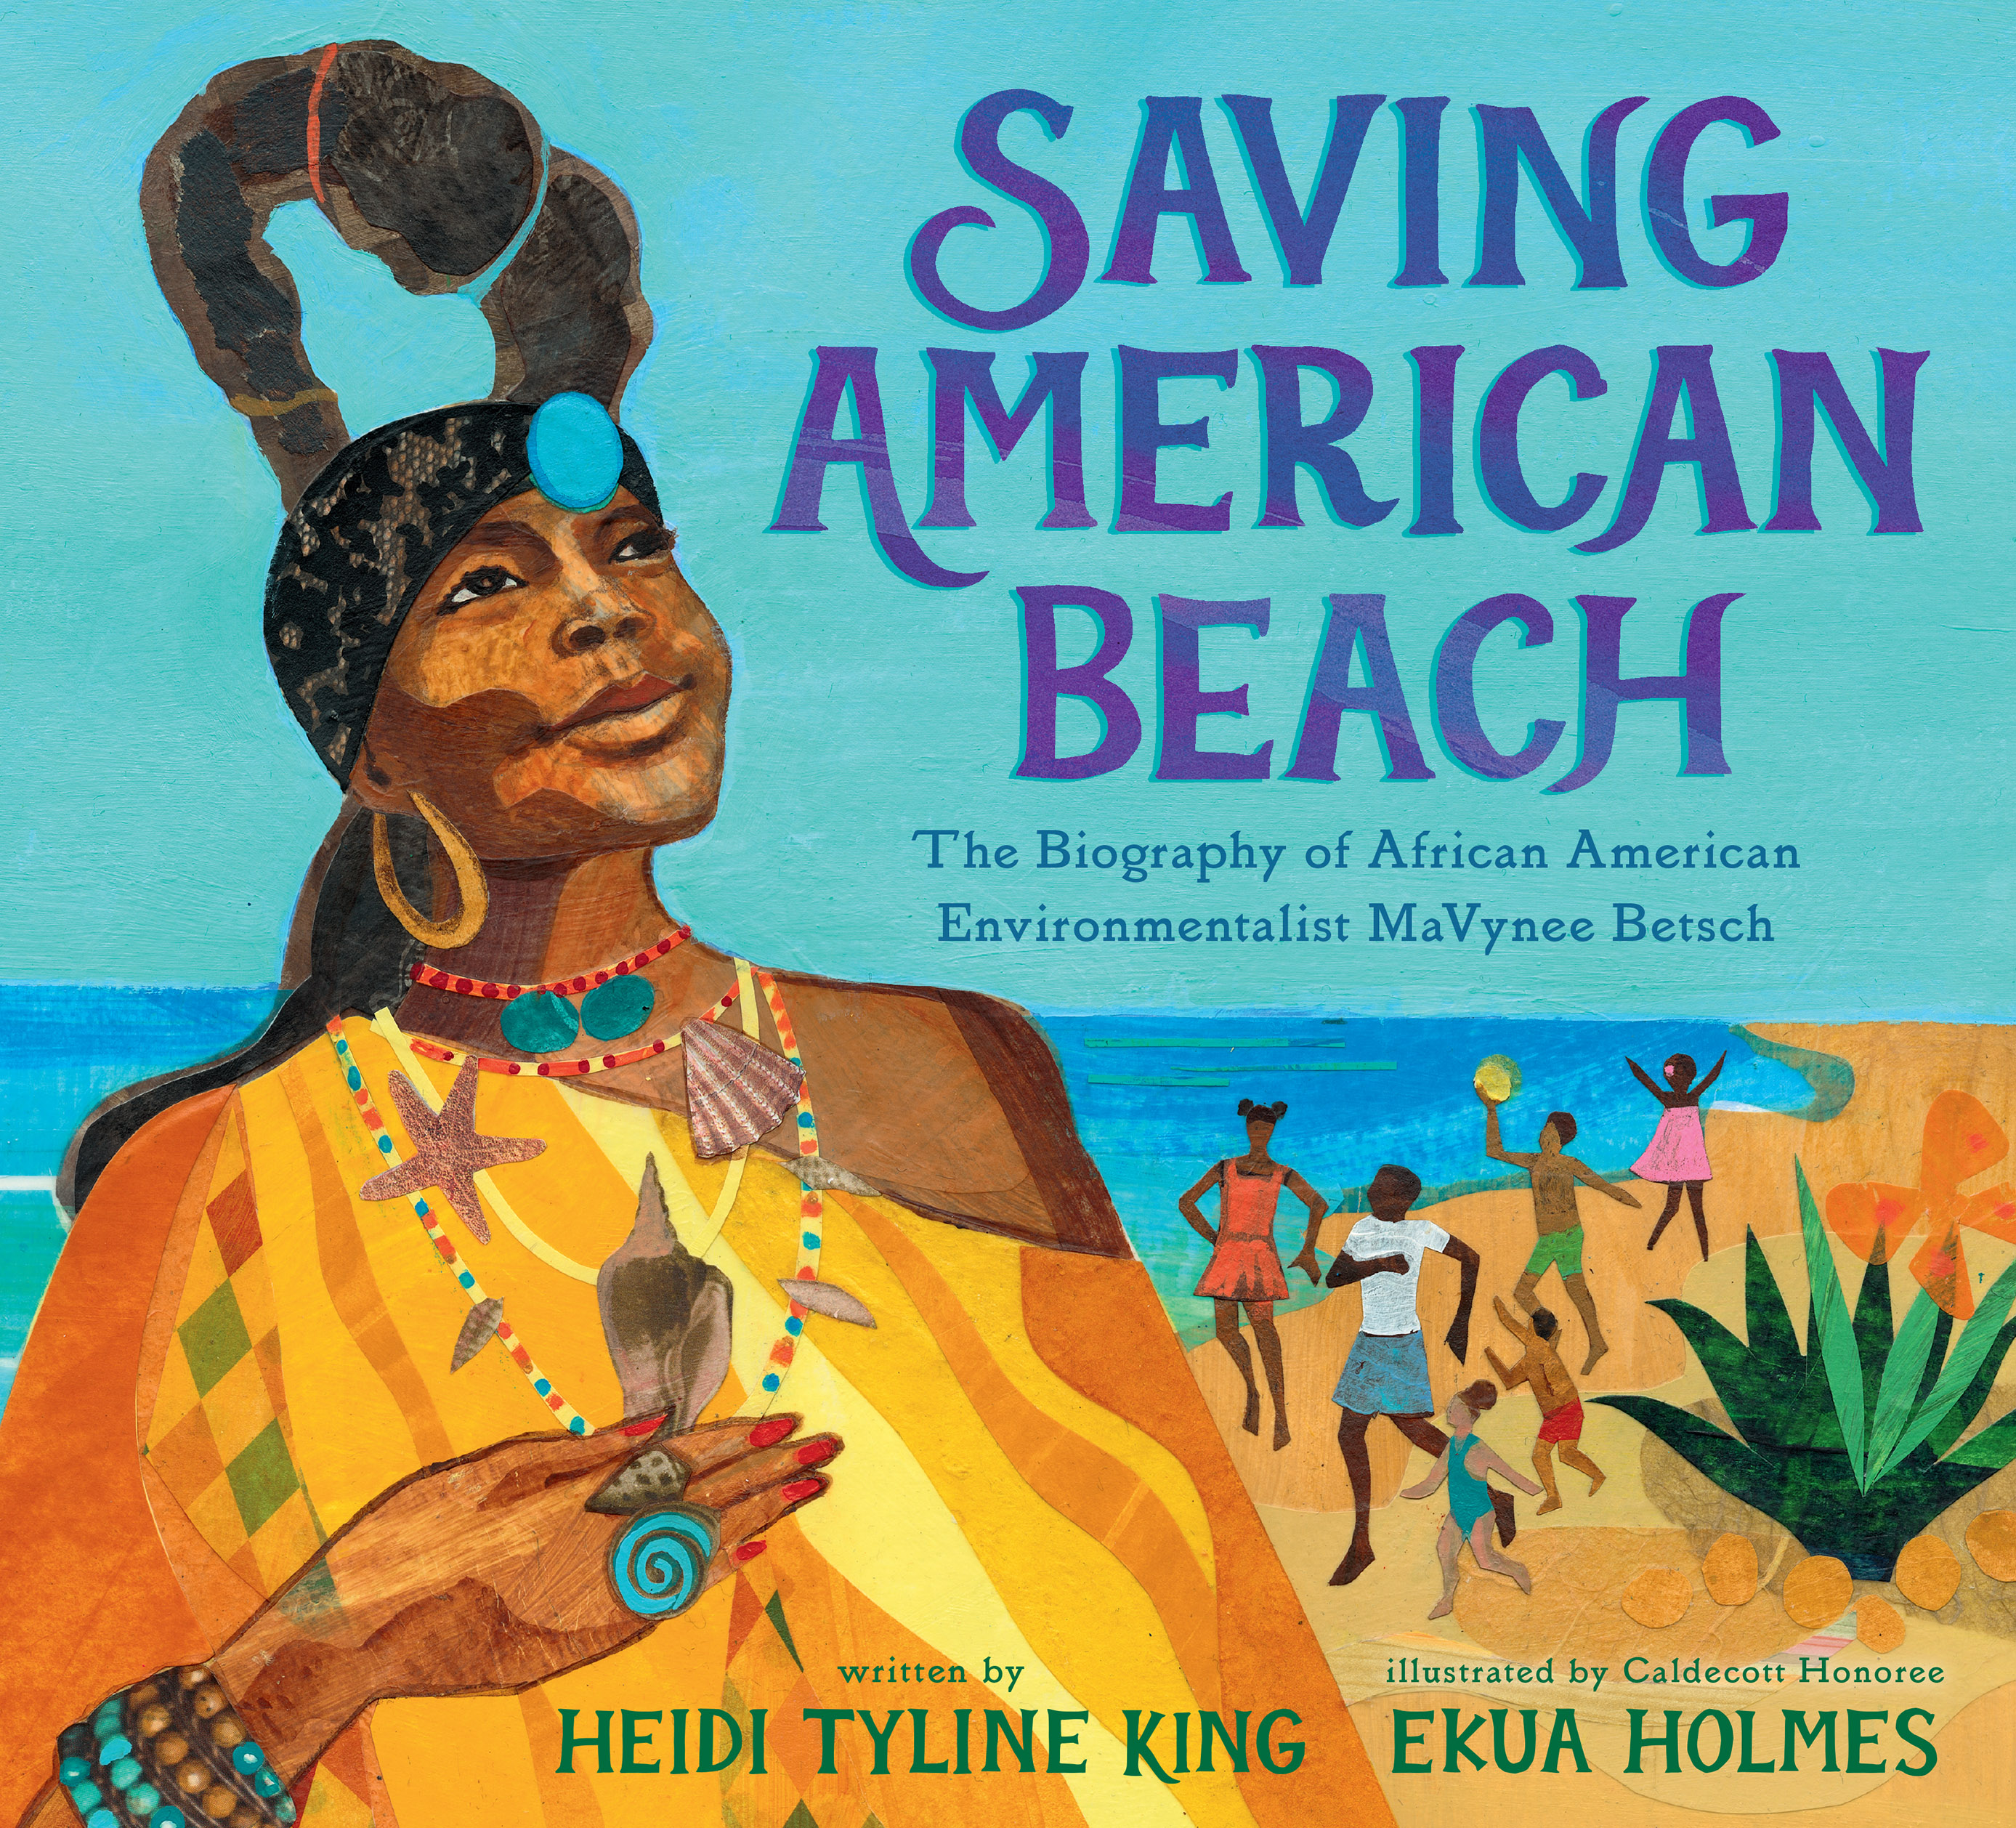 """Holmes did the illustrations for """"Saving American Beach: The Biography of African American Environmentalist MaVynee Betsch."""""""